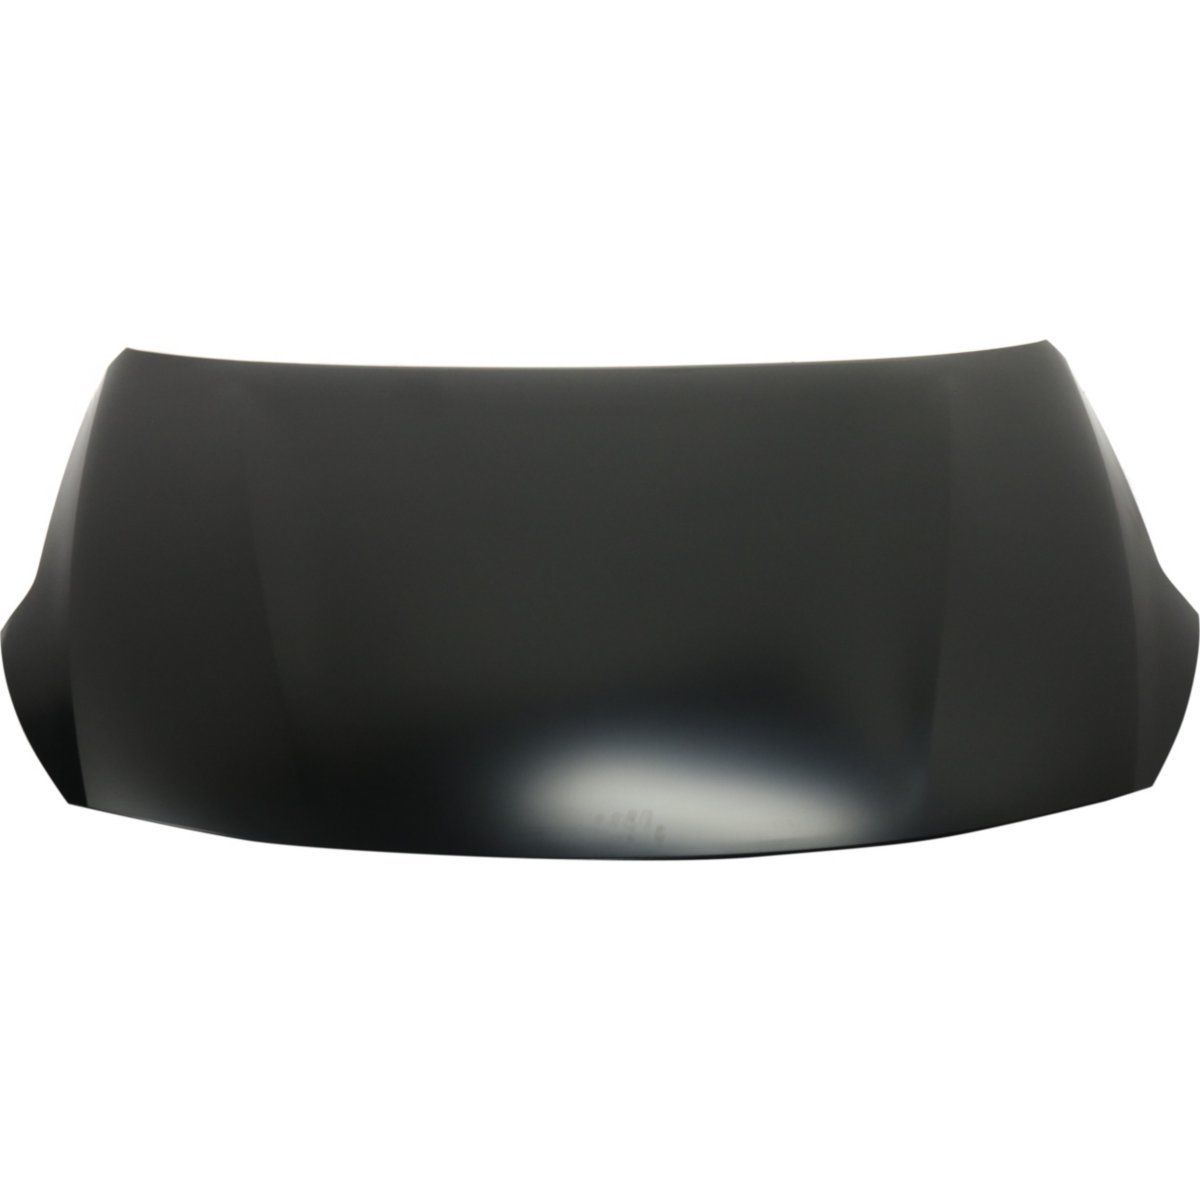 Find Car Hood Assembly Amp Other Auto Body Parts Wholesale